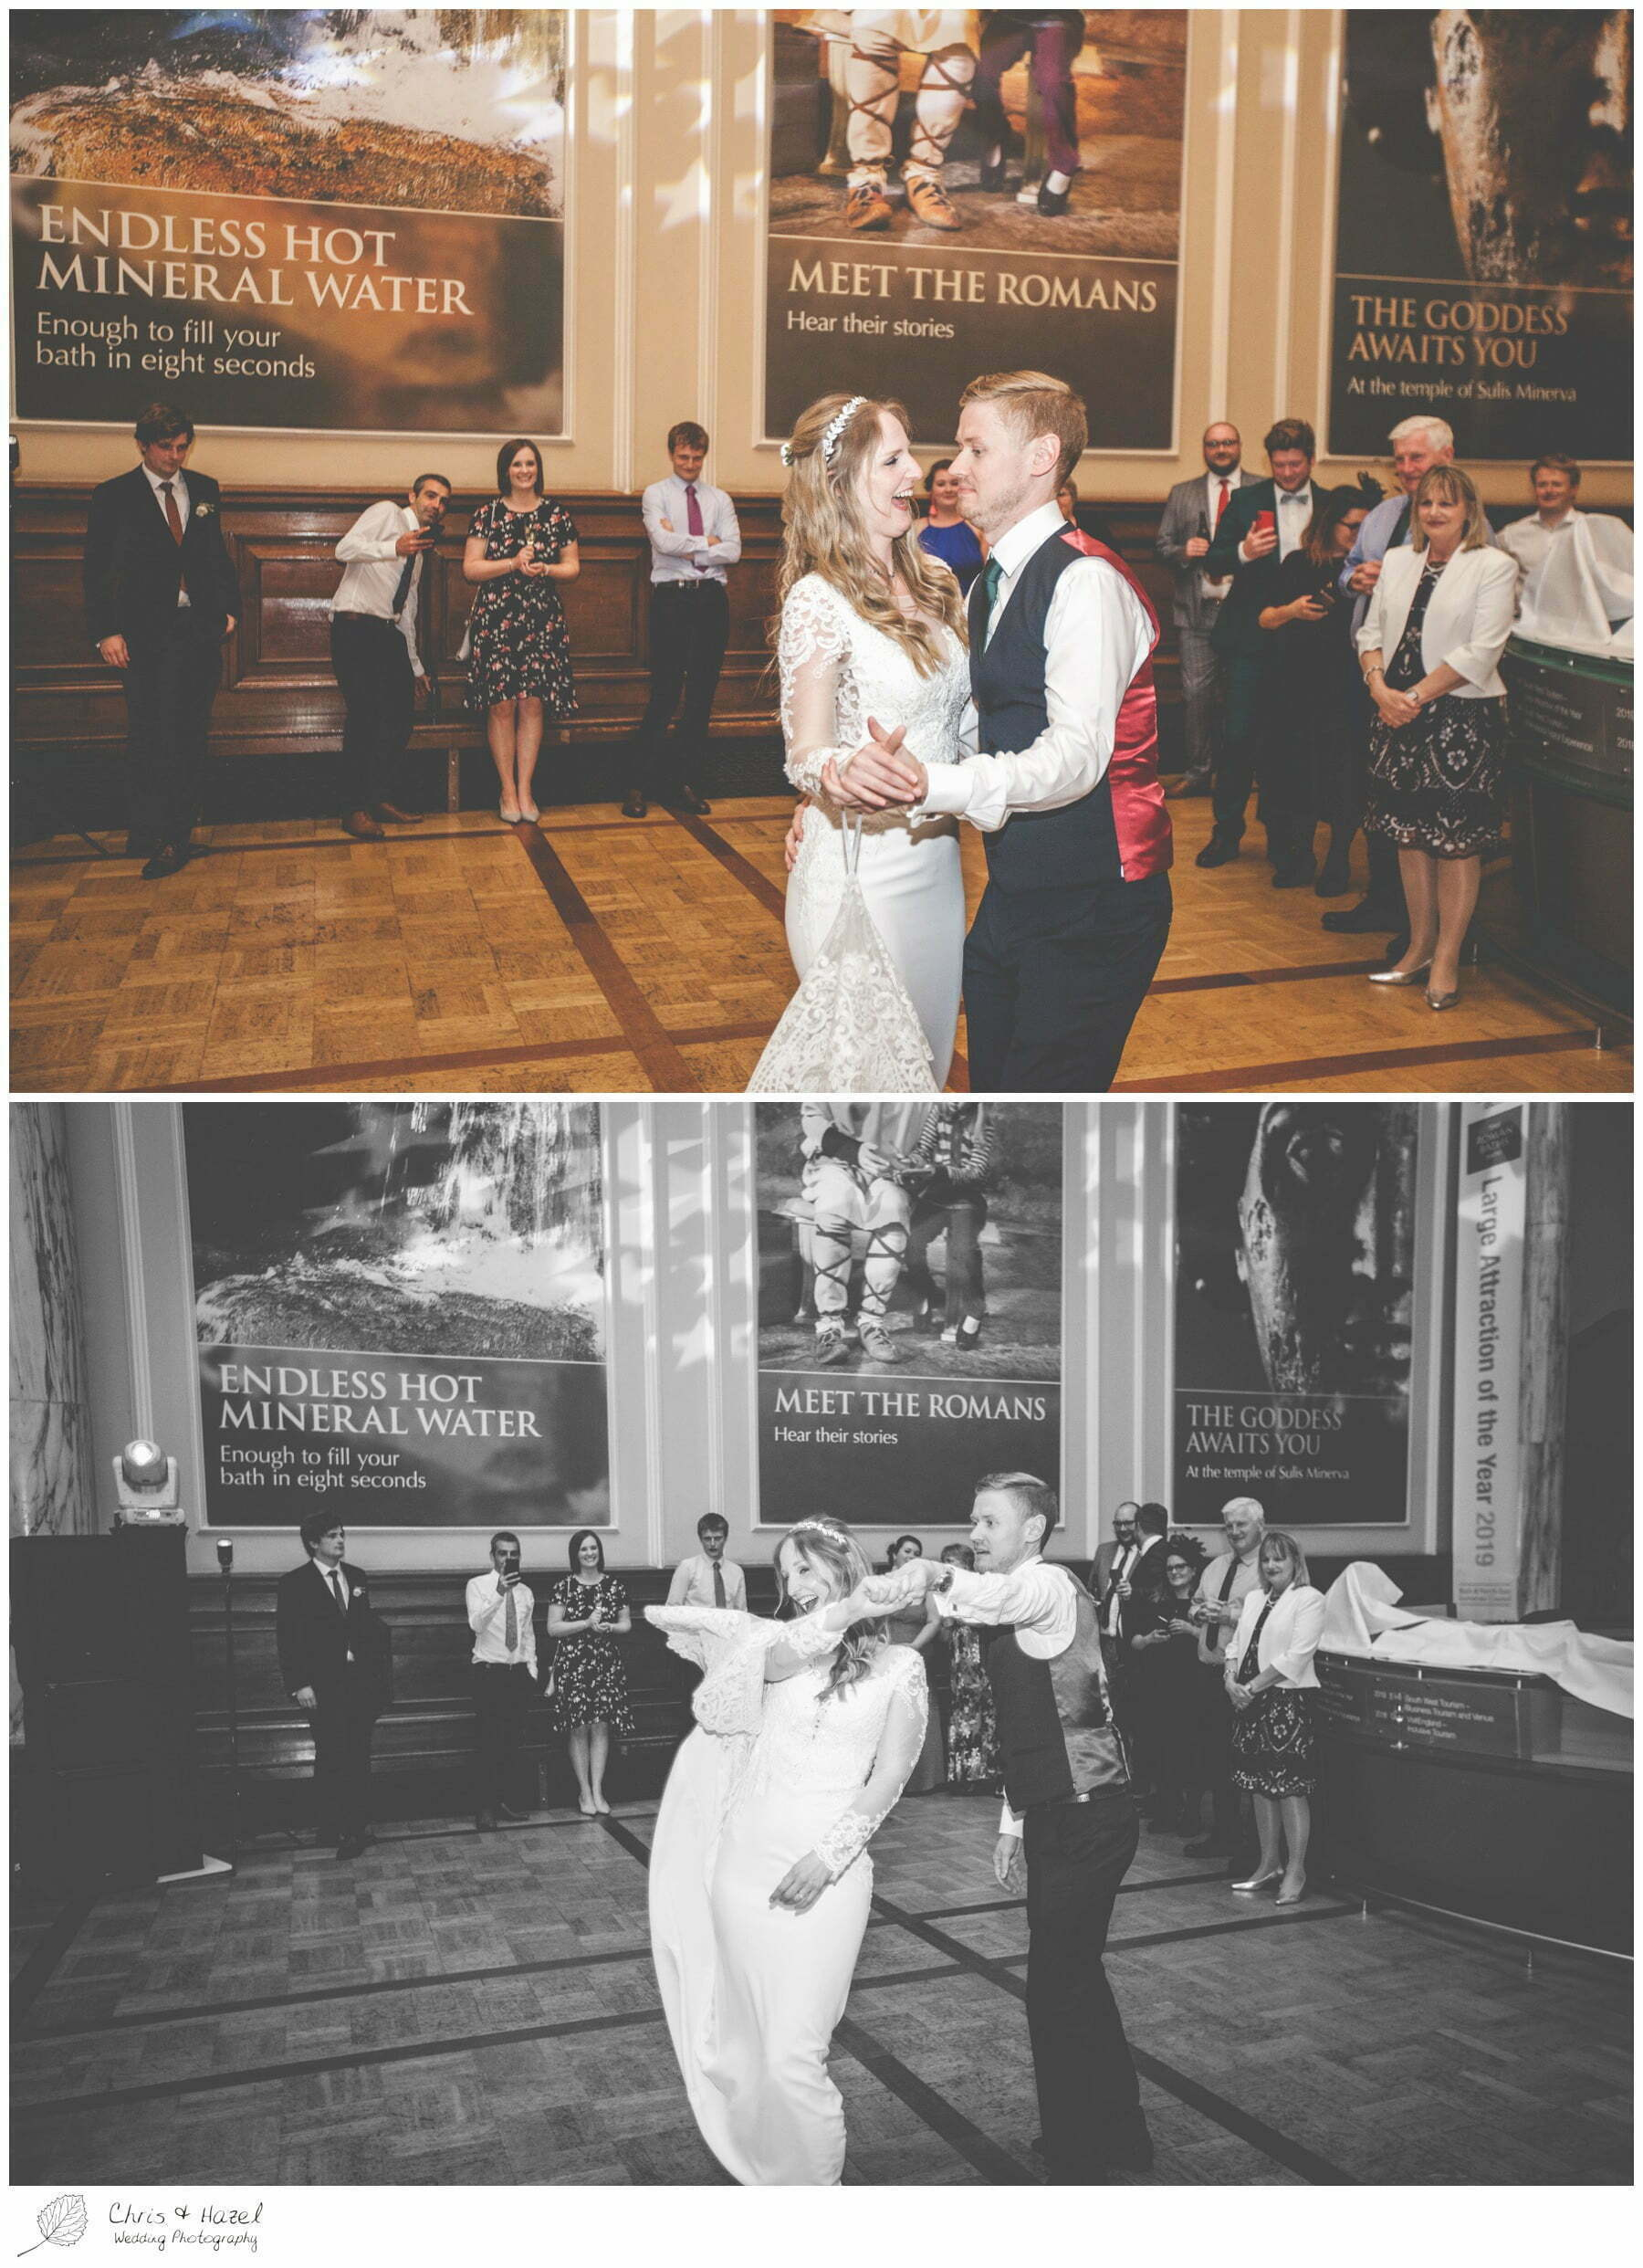 Bride and groom first dance, wedding reception ball room at Roman Baths Pump Rooms, The Roman Baths Wedding Photography, Roman Baths Wedding Photographer, Wedding in Bath, Bath Wedding Day, documentary wedding photography, Chris and Hazel Wedding Photography Bath, Andy Frost Sian Upson